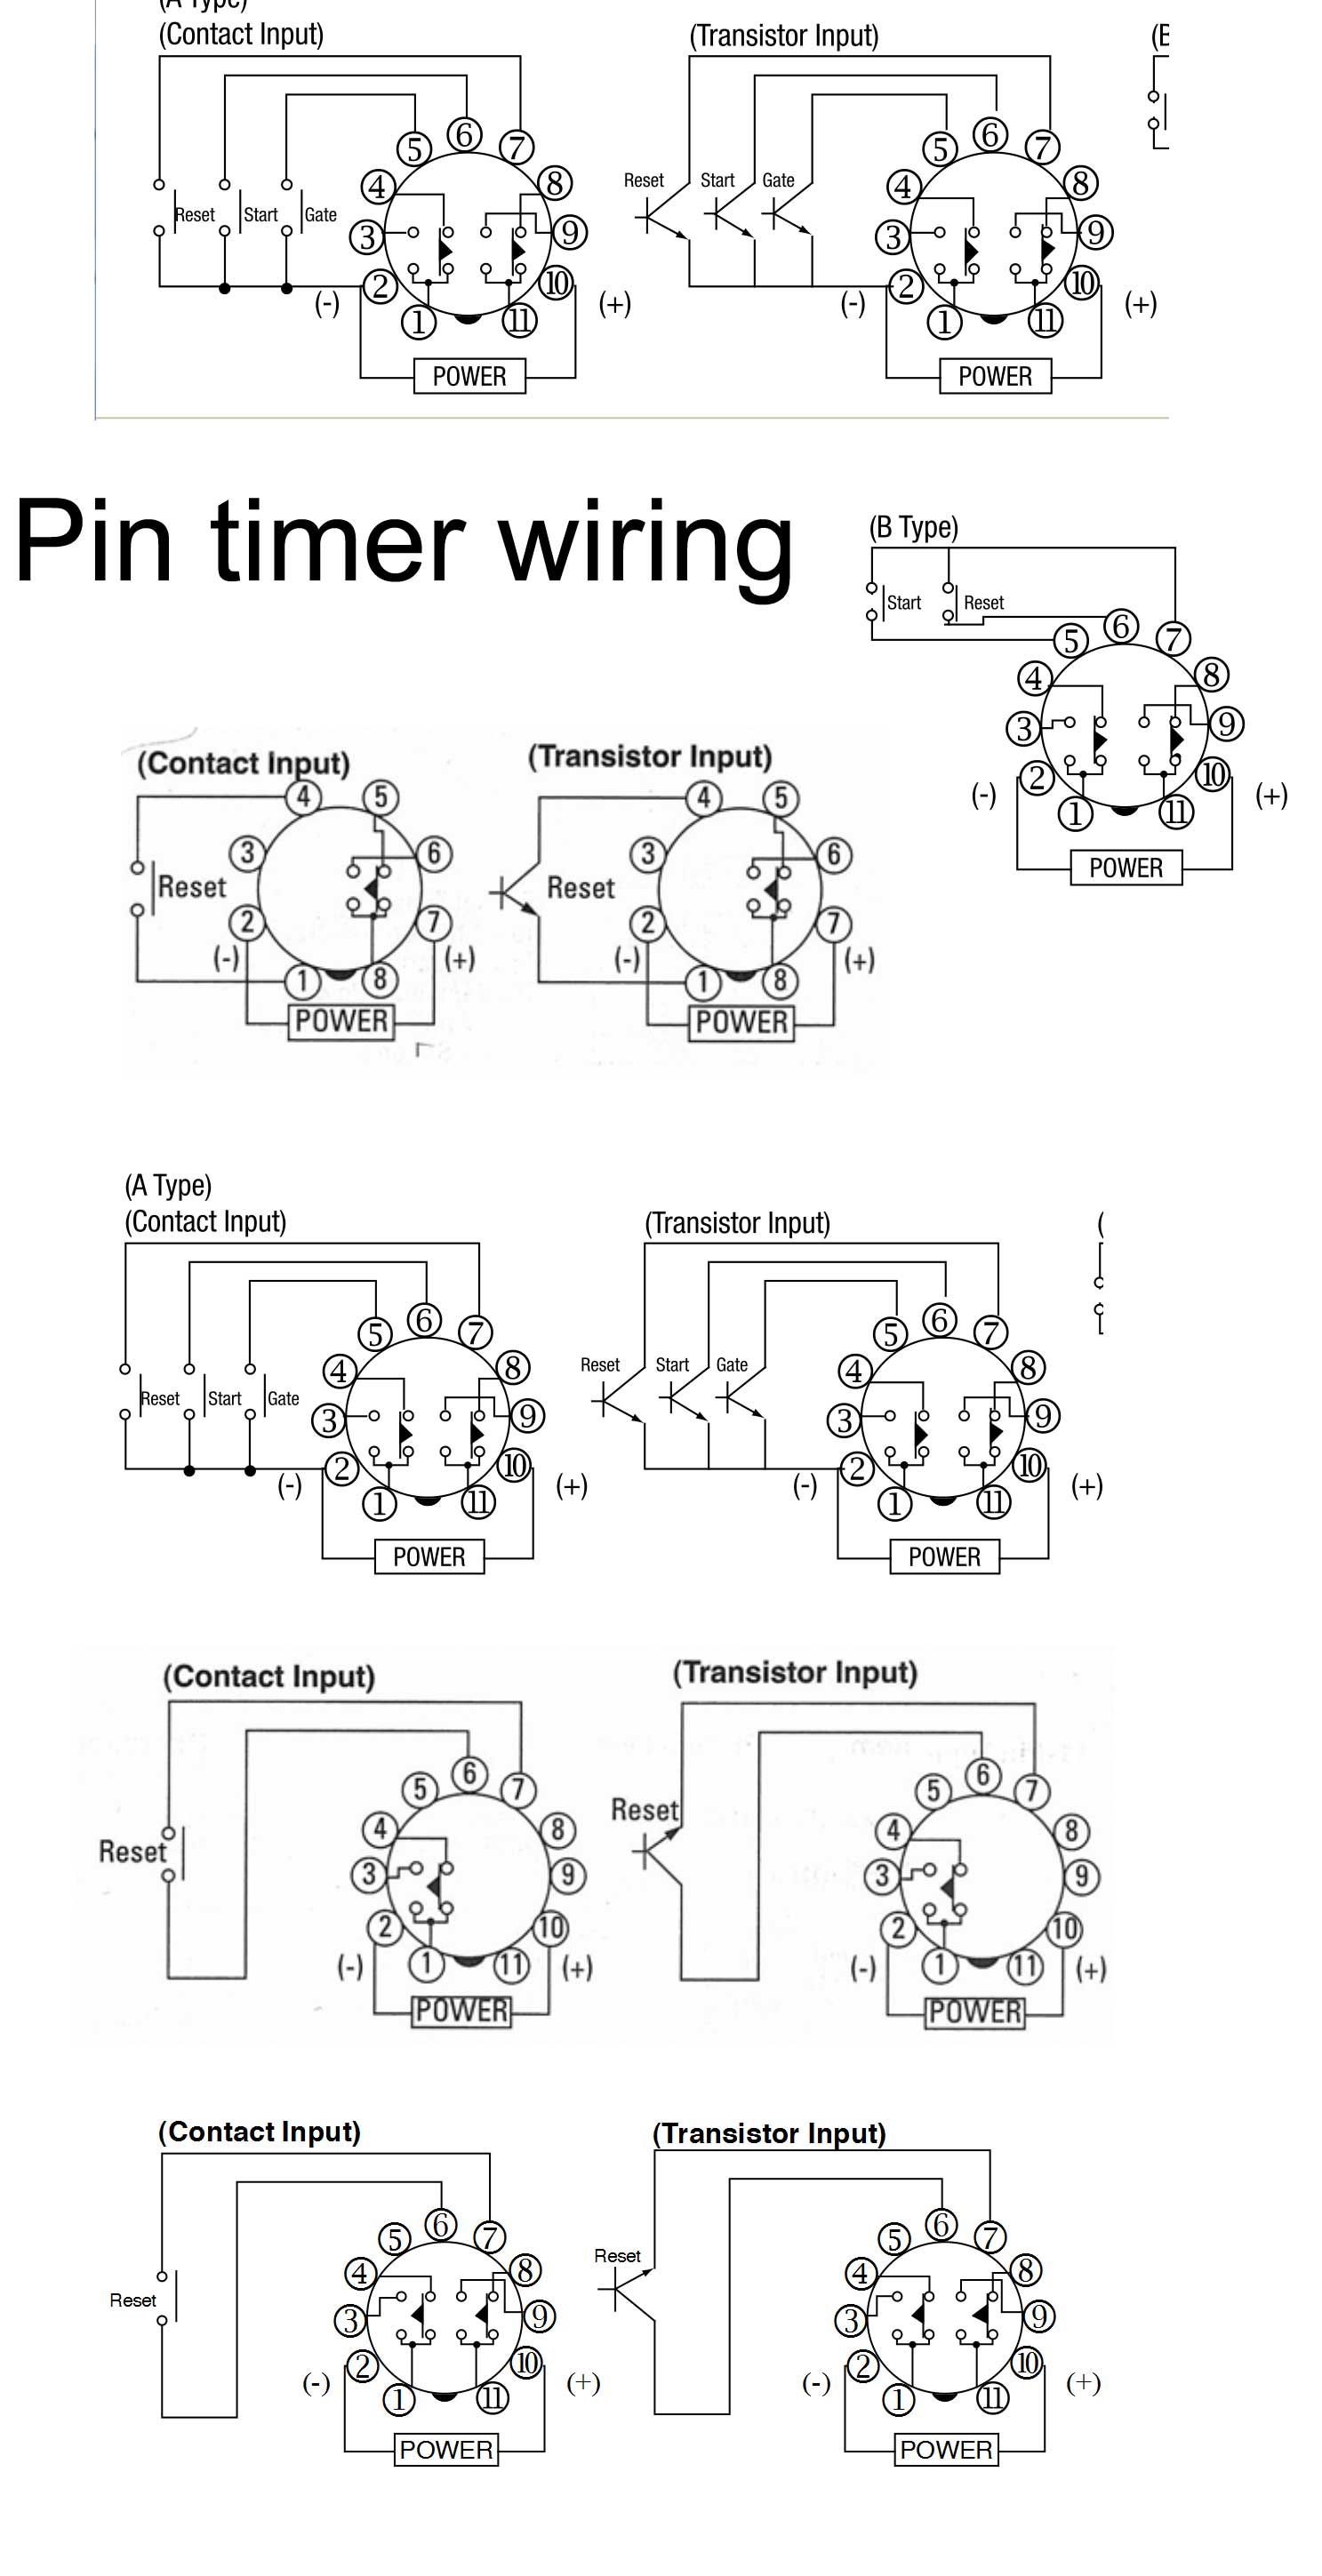 Pin timer wiring 12 how to wire pin timers chint contactor wiring diagram at creativeand.co